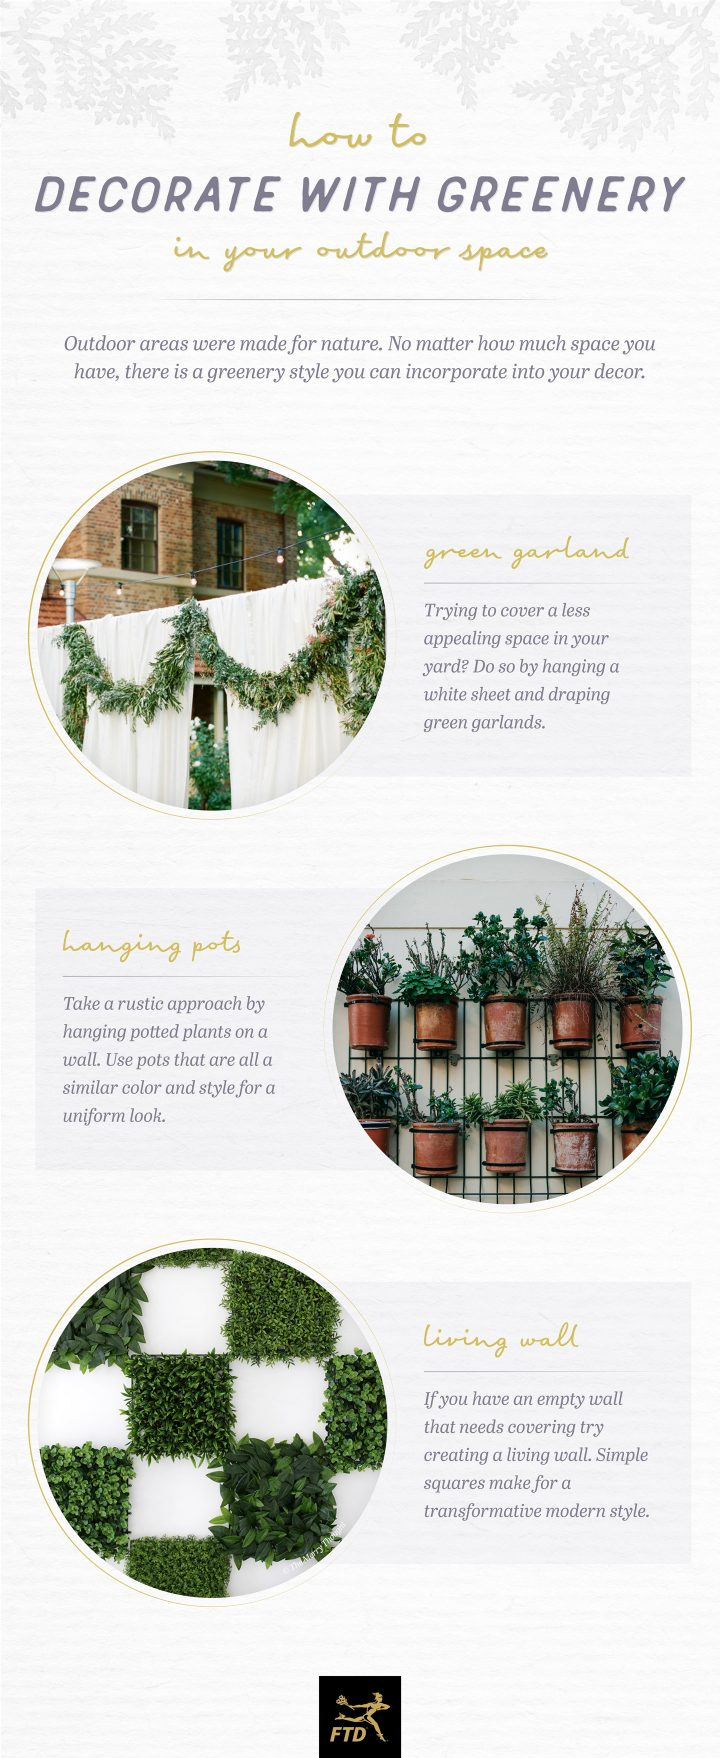 Decorate with Greenery - Your Outdoor Space